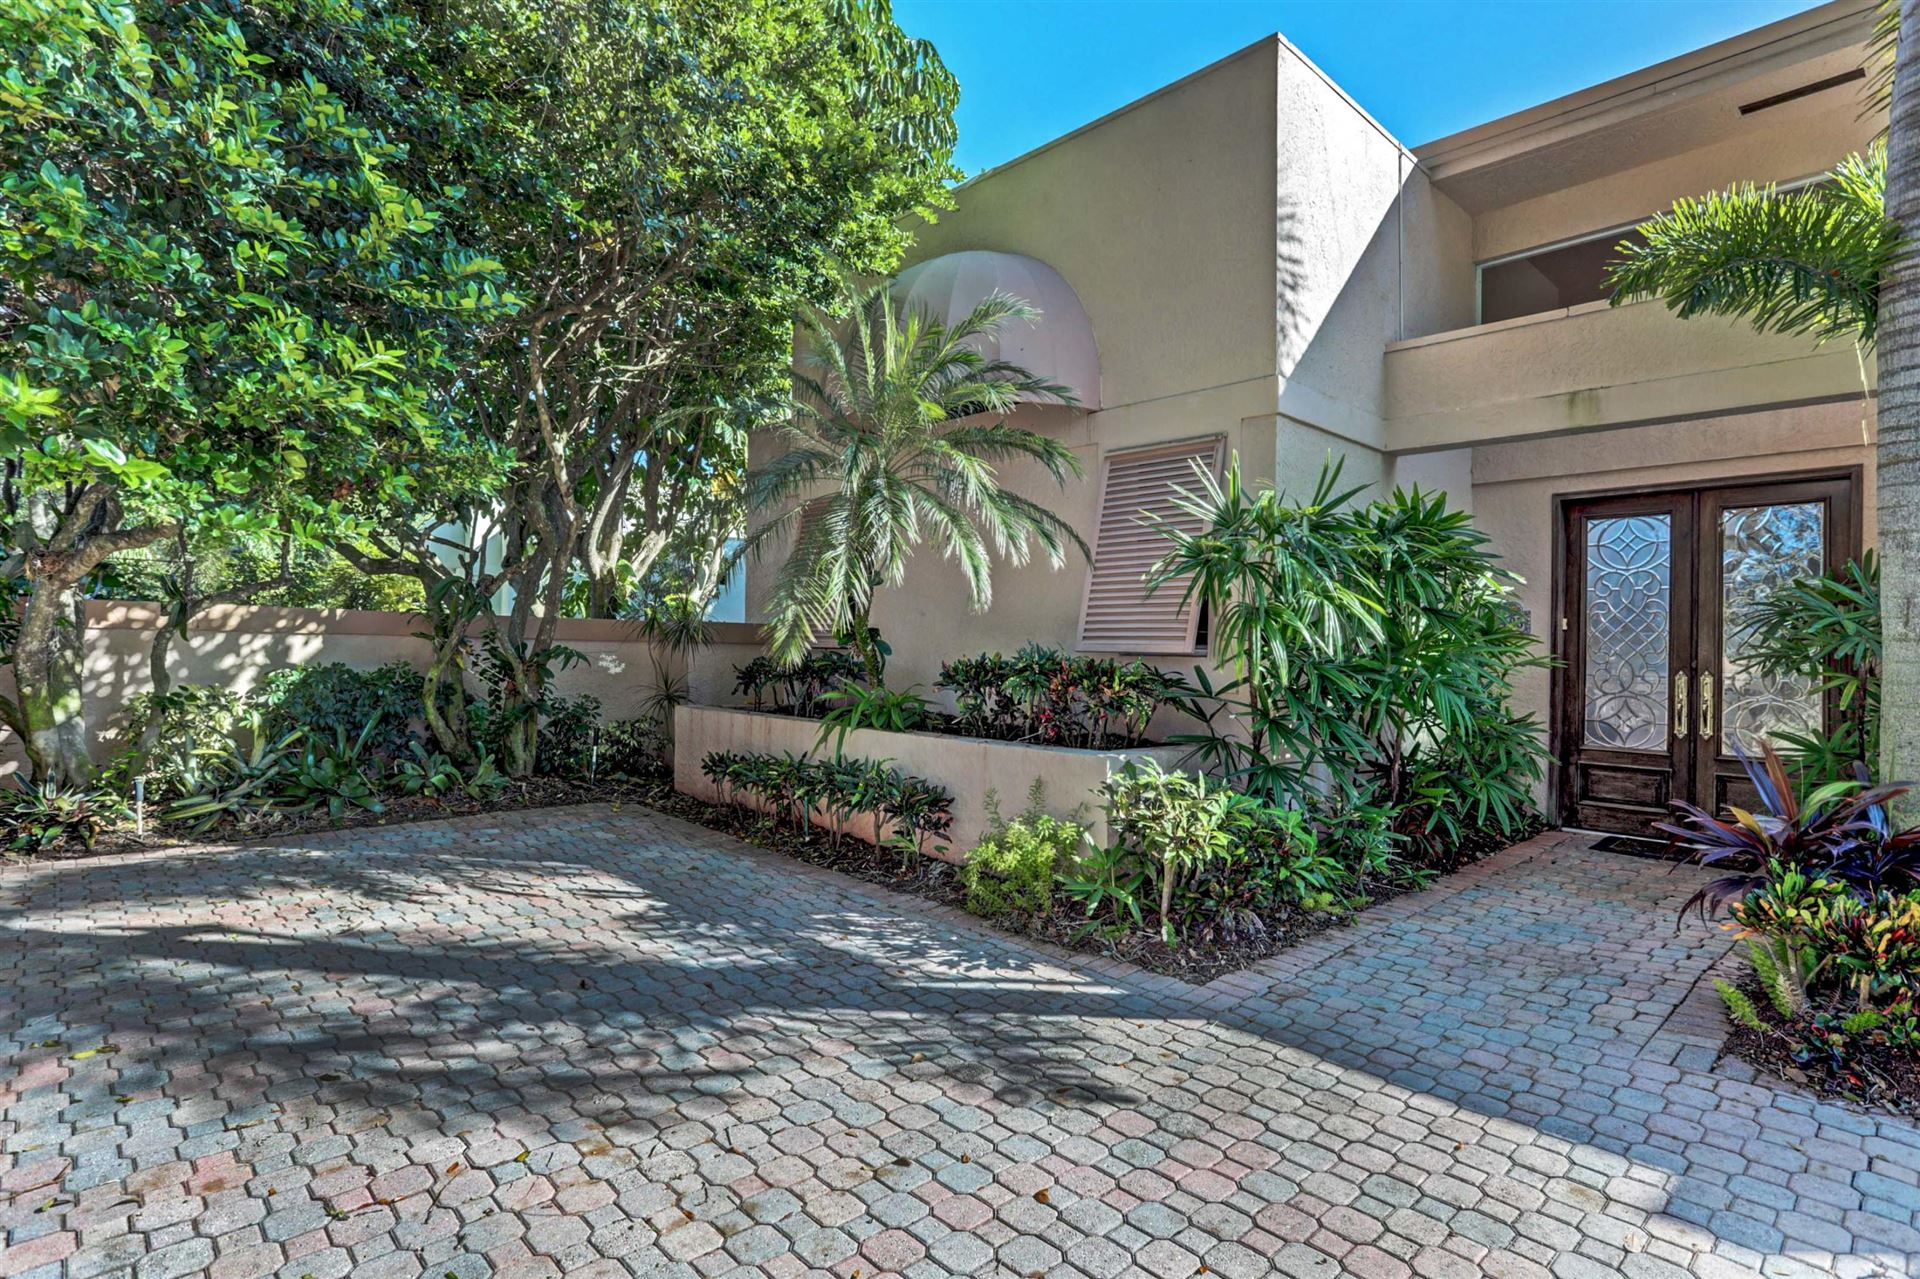 Photo of 103 Waters Edge Dr Drive, Jupiter, FL 33477 (MLS # RX-10669891)